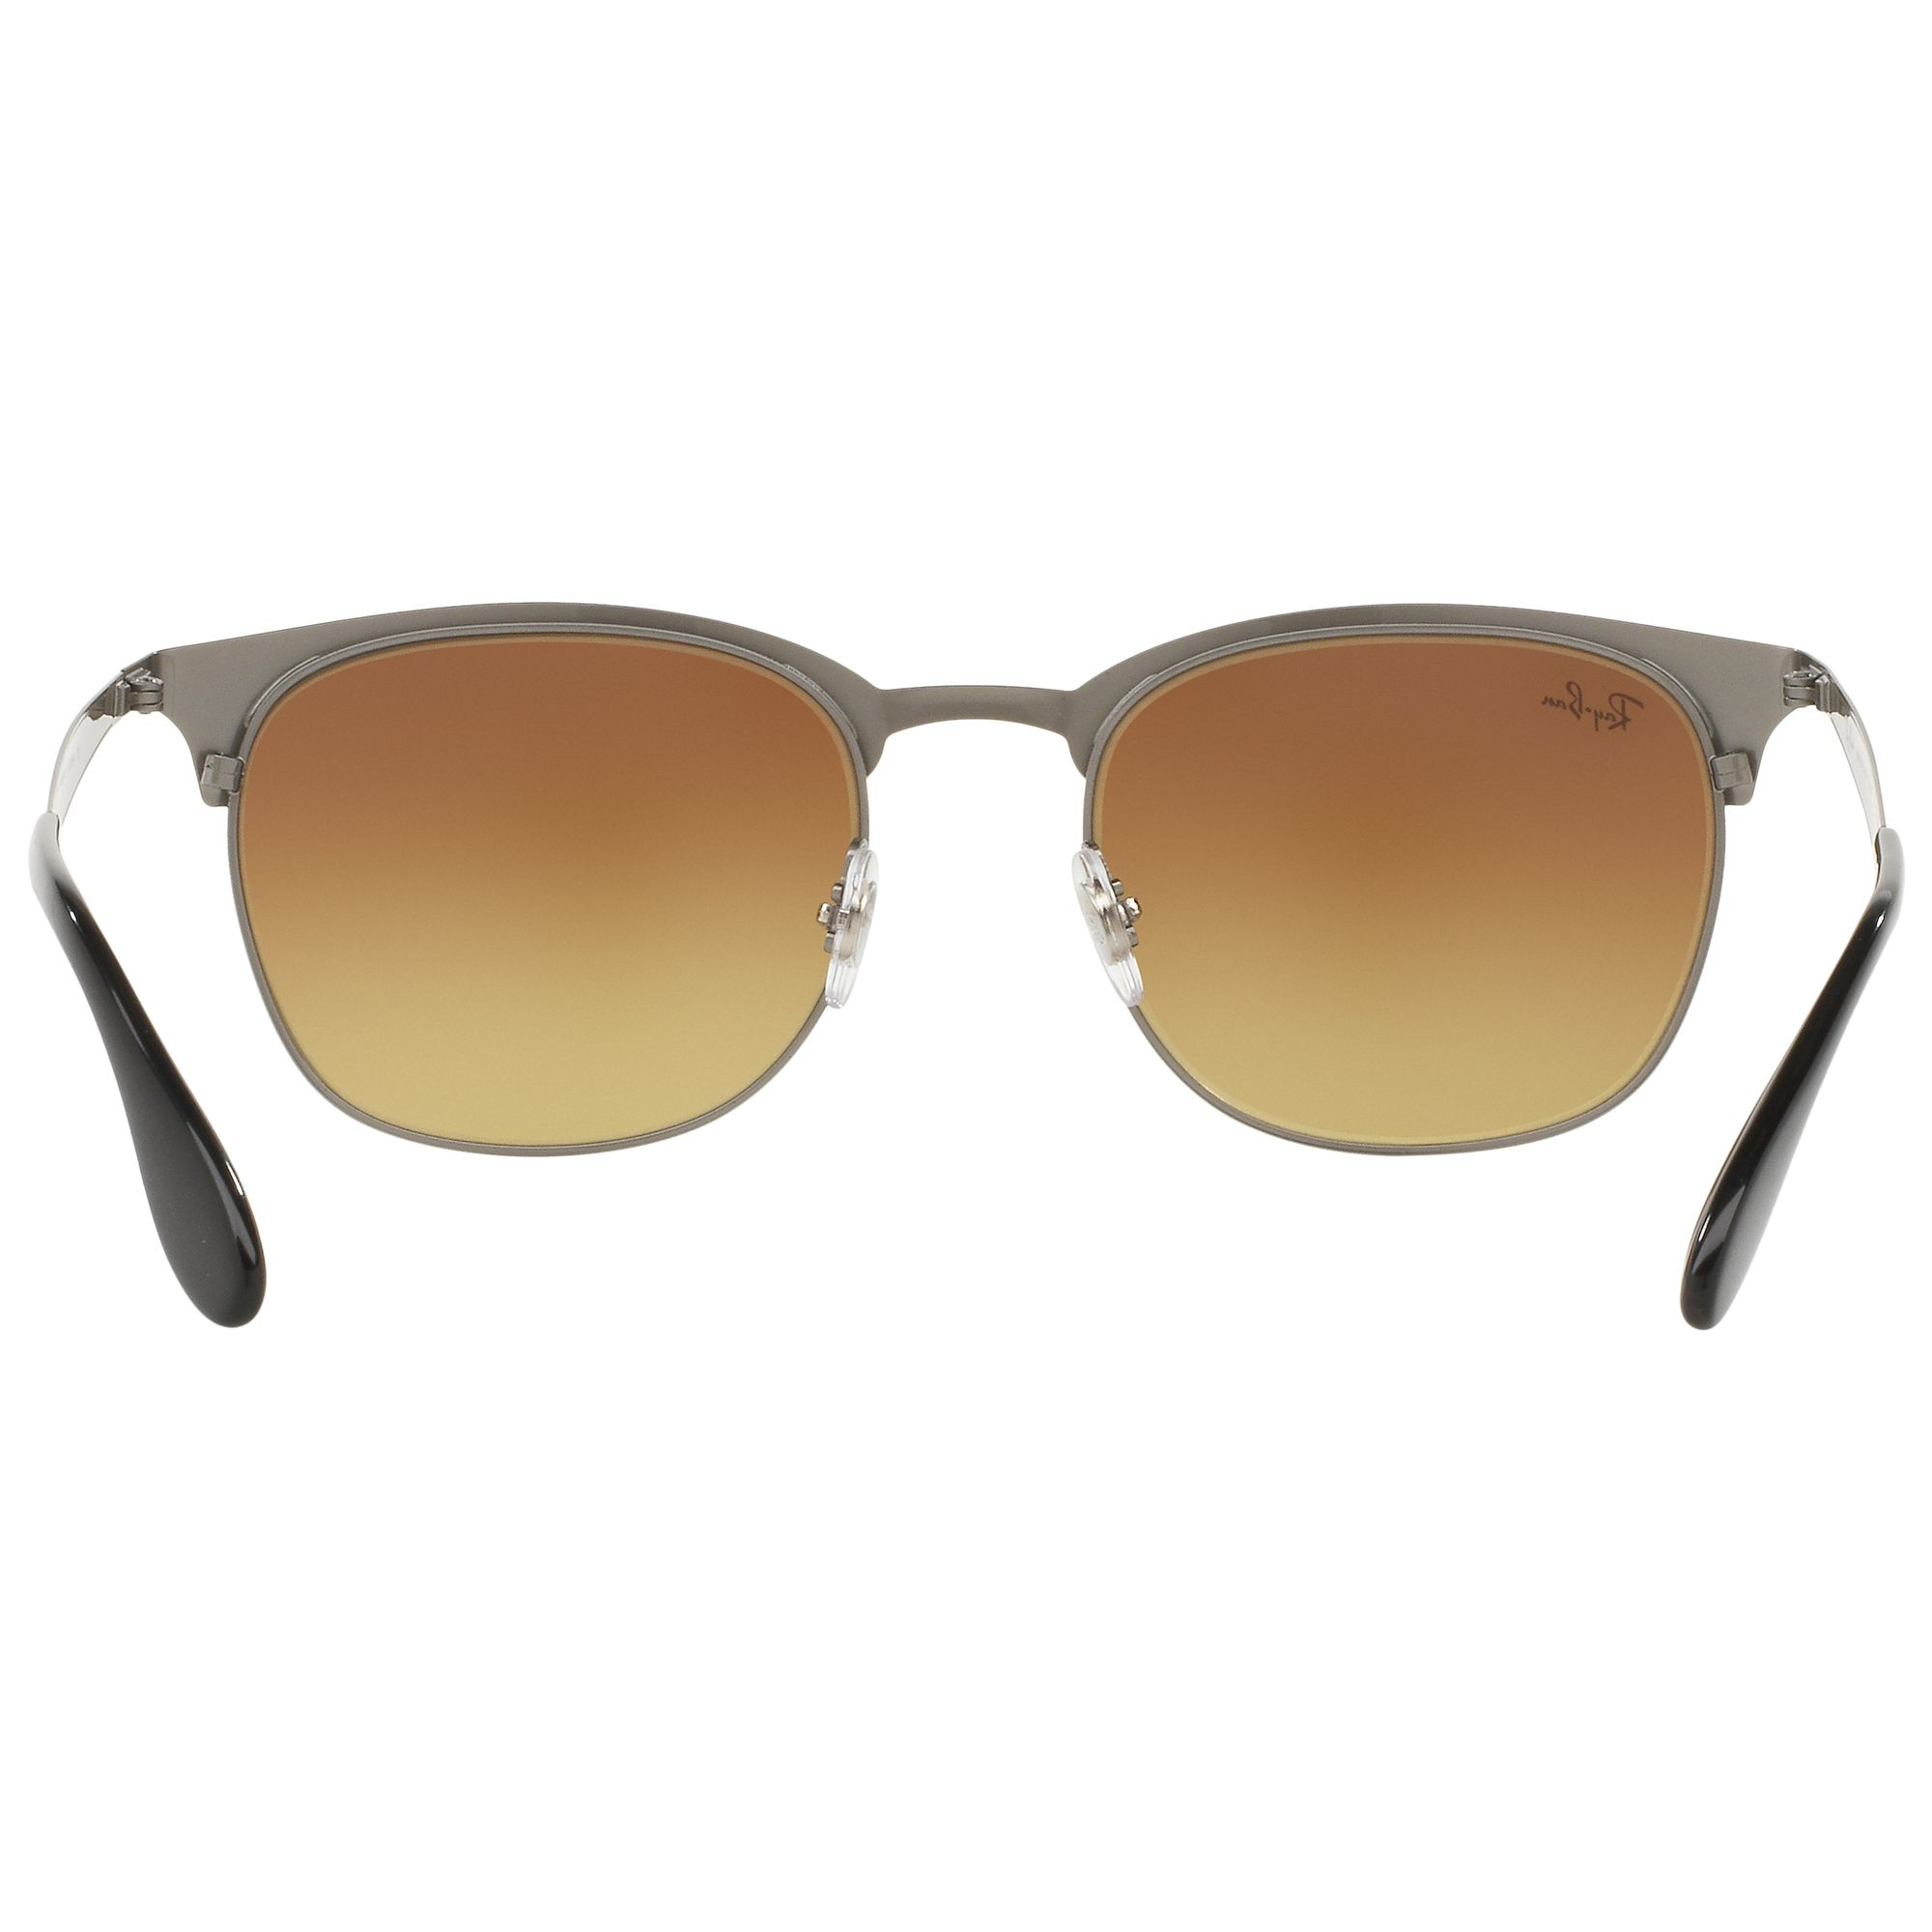 Half Frame Square Glasses : Buy Ray-Ban RB3538 Half Frame Square Sunglasses John Lewis